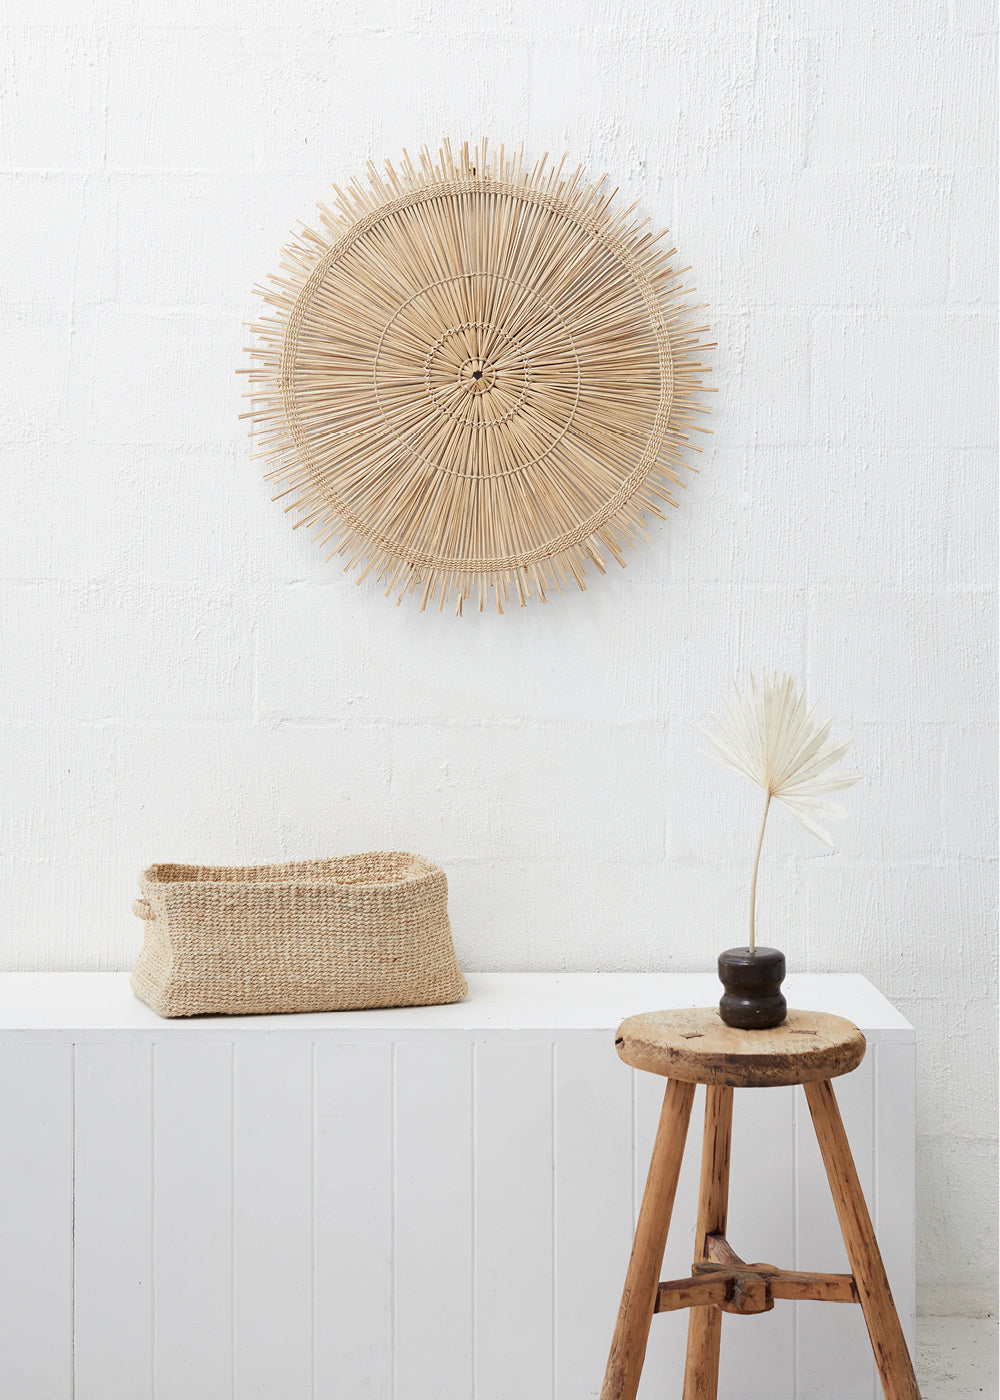 woven wall hanging - circular woven grass wall hanging on plain white wall with woven jute basket and vase in front of it.